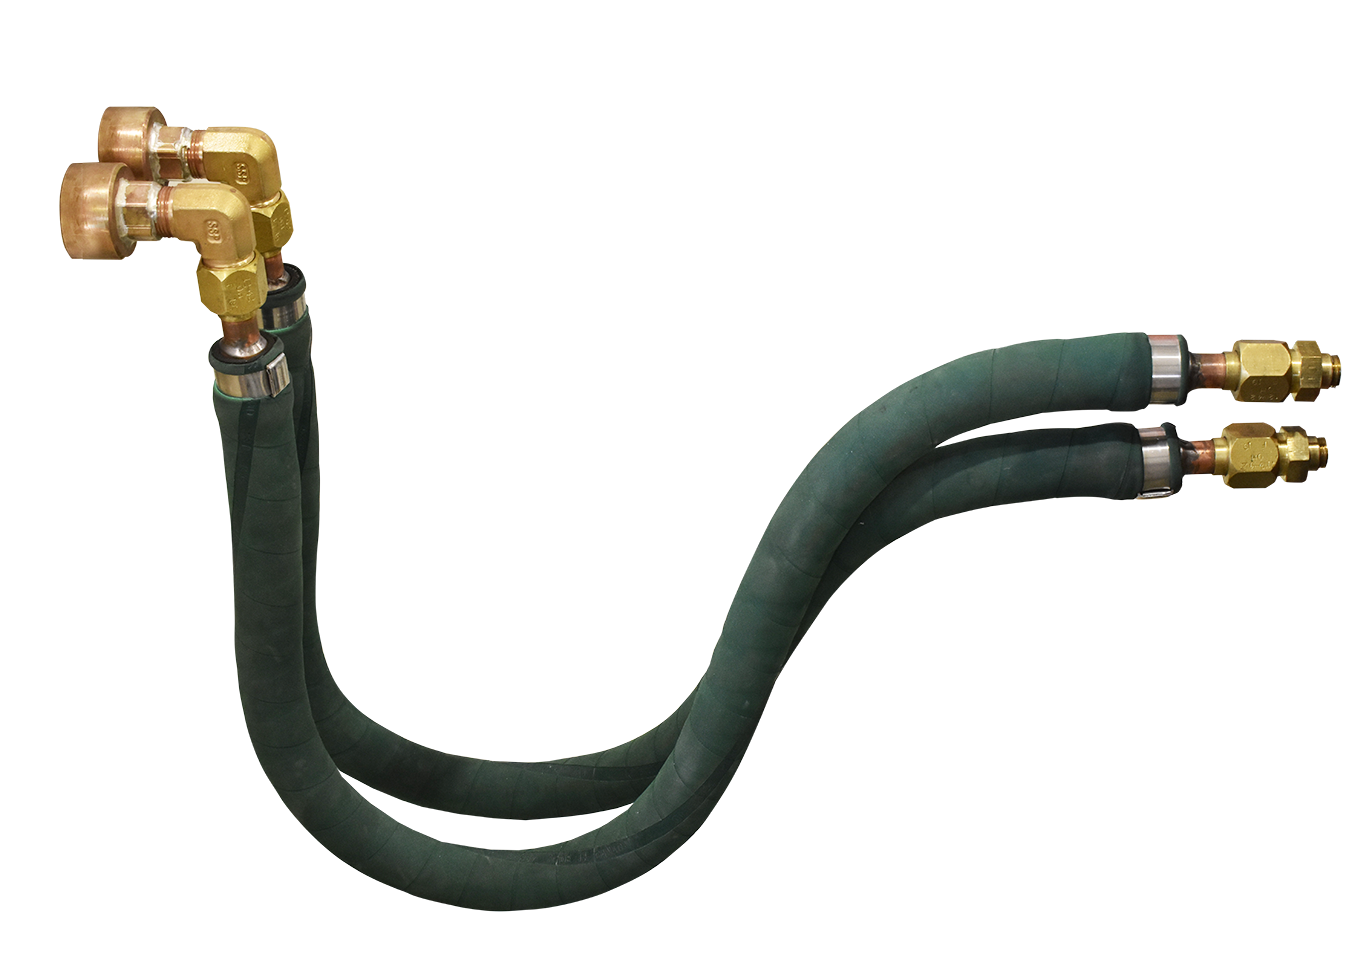 Water-coolling cables for induction systems